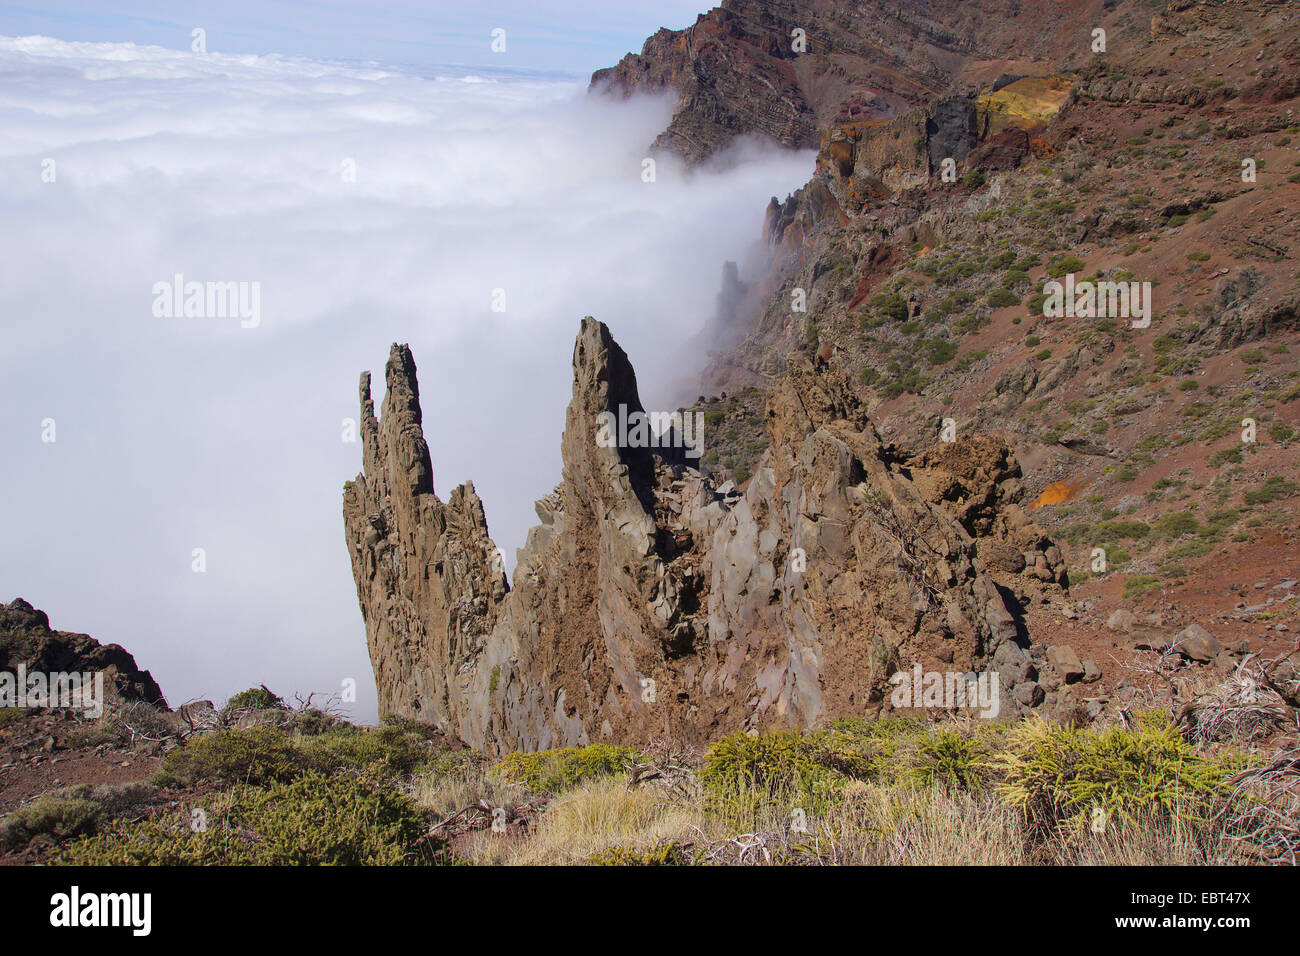 eroded magma conduit, Canary Islands, La Palma, Caldera de Taburiente - Stock Image